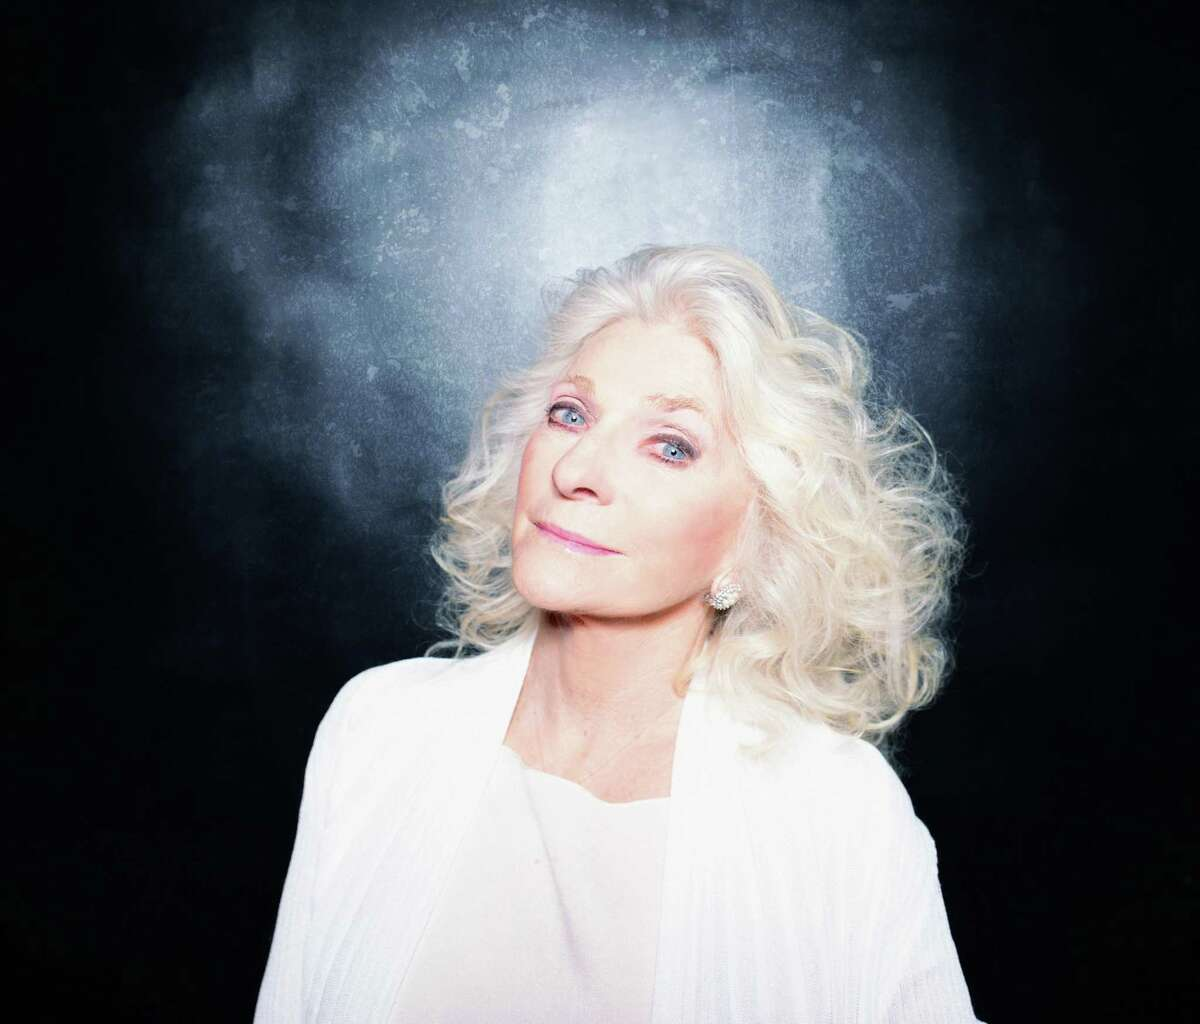 Iconic folk singer Judy Collins comes to the Katharine Hepburn Cultural Arts Center in downtown Old Saybrook Dec. 22-23.